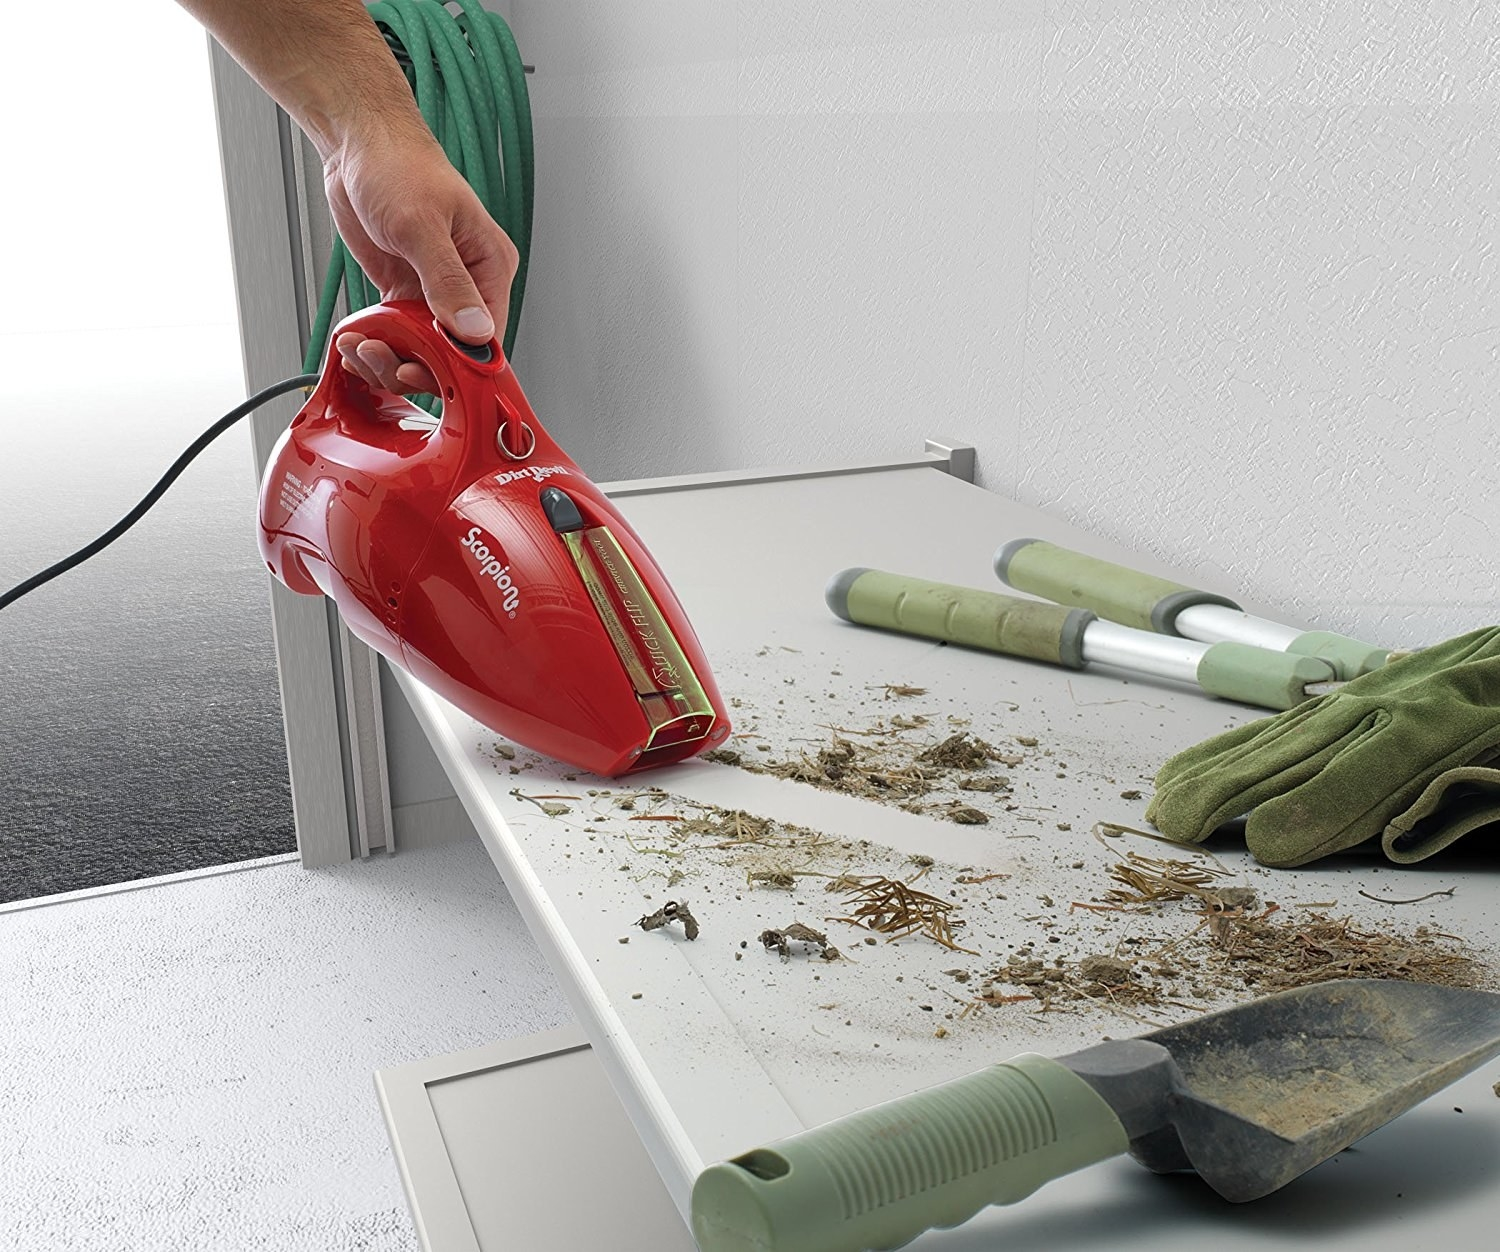 The corded handheld vac being used on soil